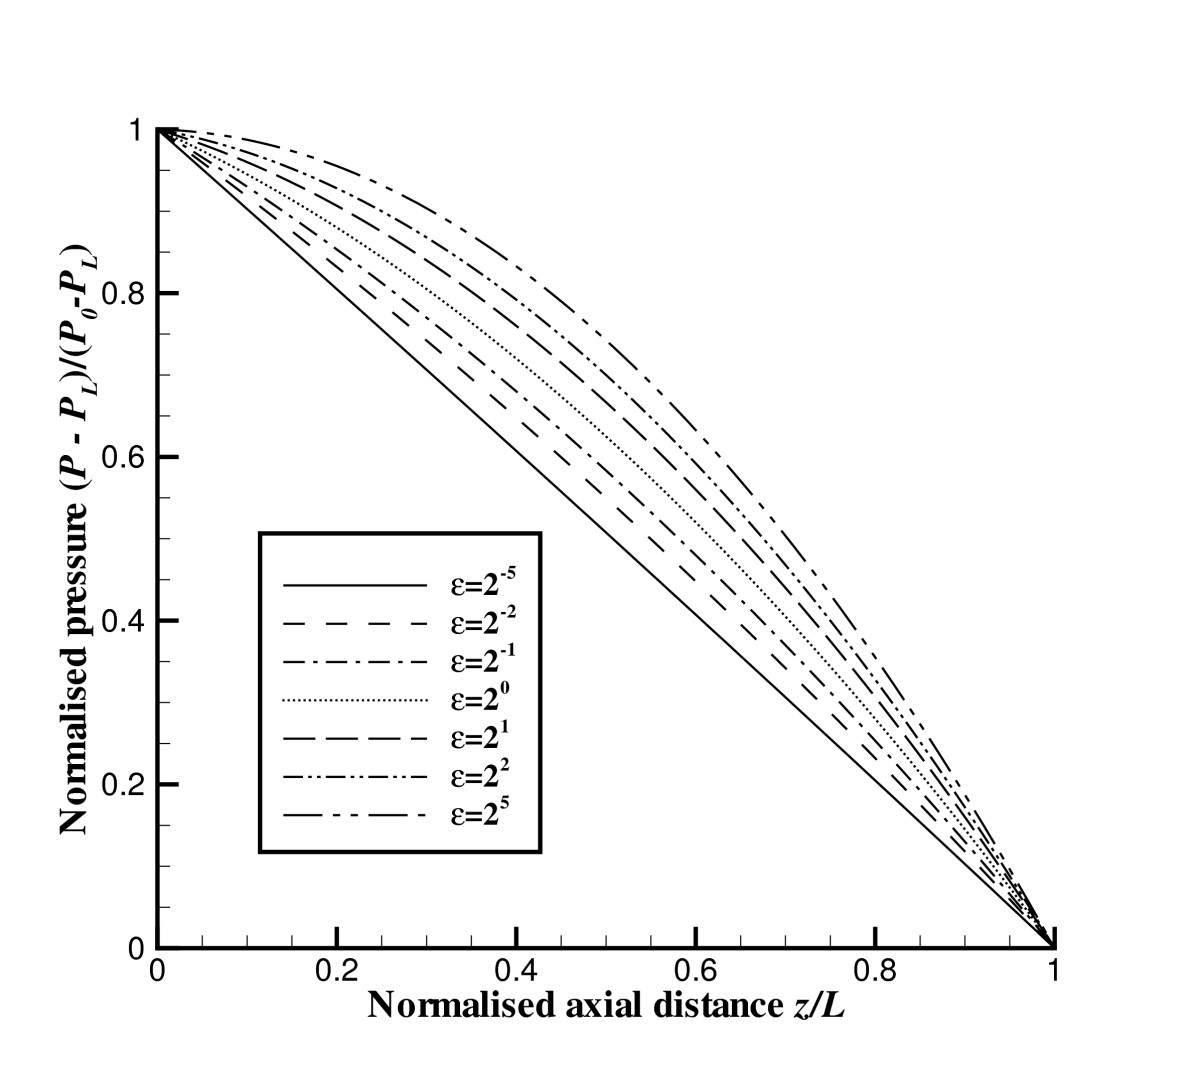 https://static-content.springer.com/image/art%3A10.1186%2F1556-276X-6-389/MediaObjects/11671_2011_Article_503_Fig6_HTML.jpg